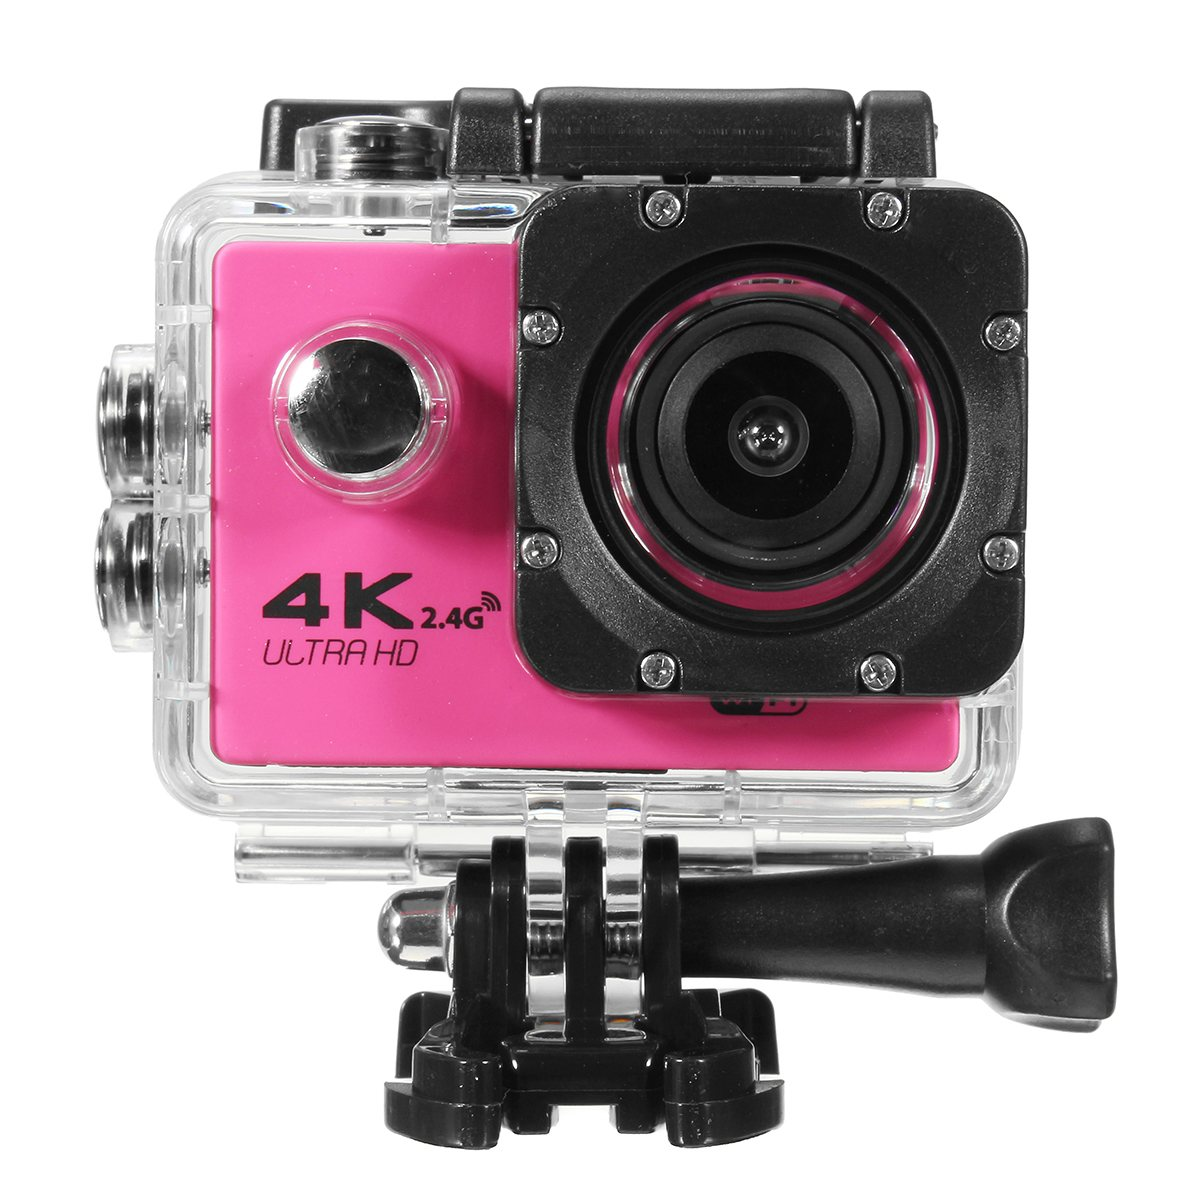 Multi Color Action Camera F60R Ultra HD 4K /30fps WiFi 2.0 170D go Helmet Cam pro underwater waterproof Sport Consumer Camera